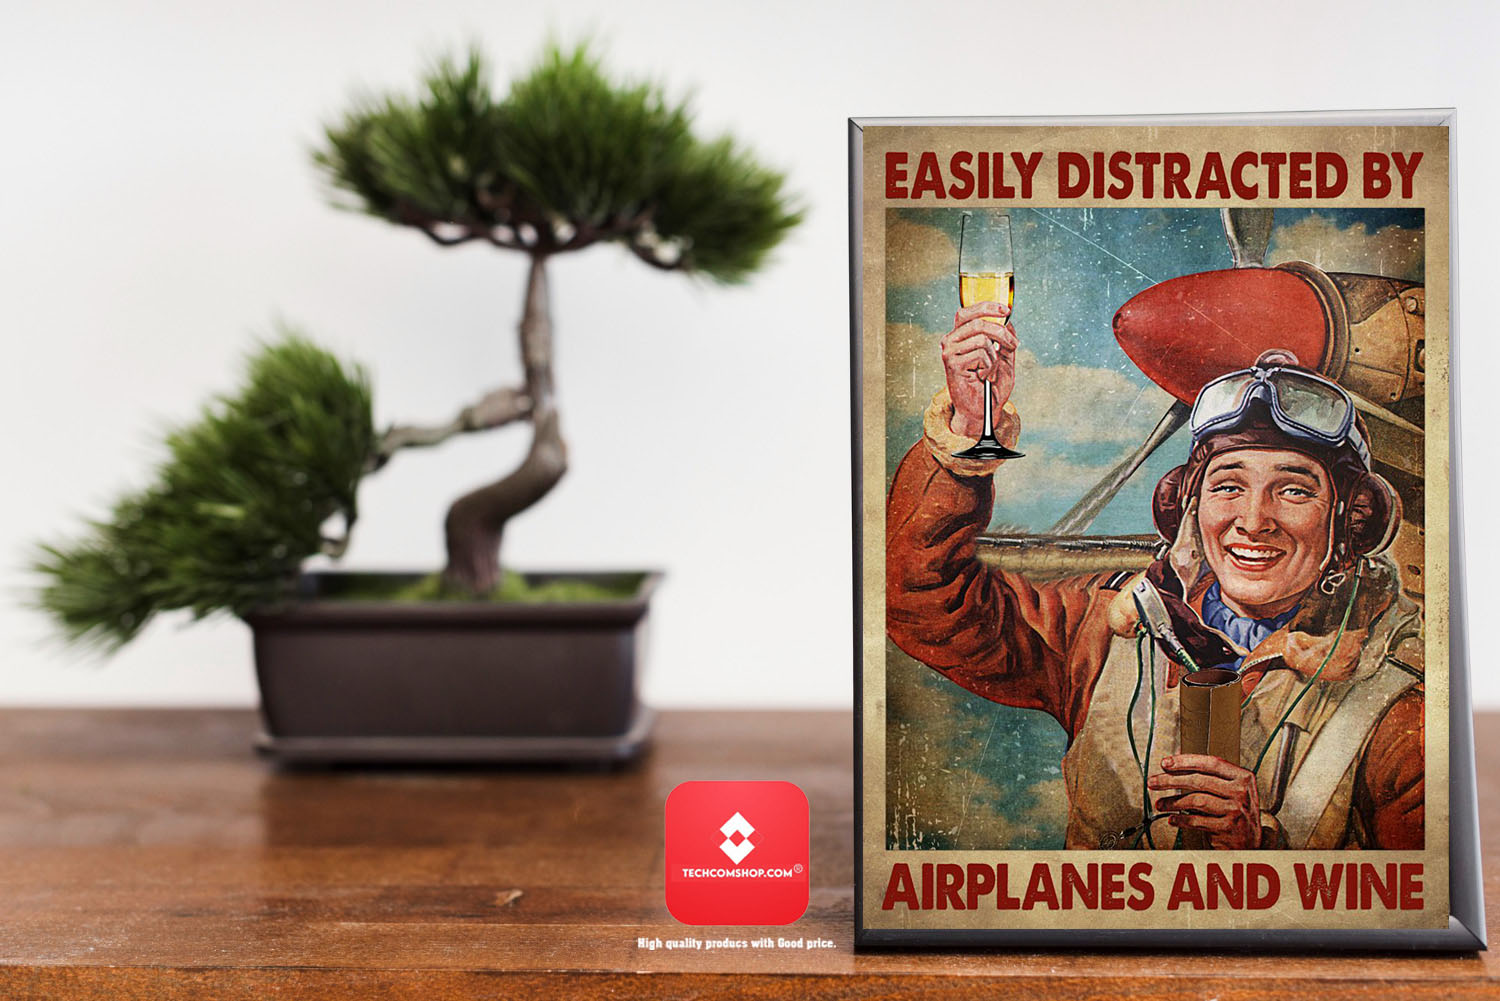 Easily distracted by airplanes and wine poster 8